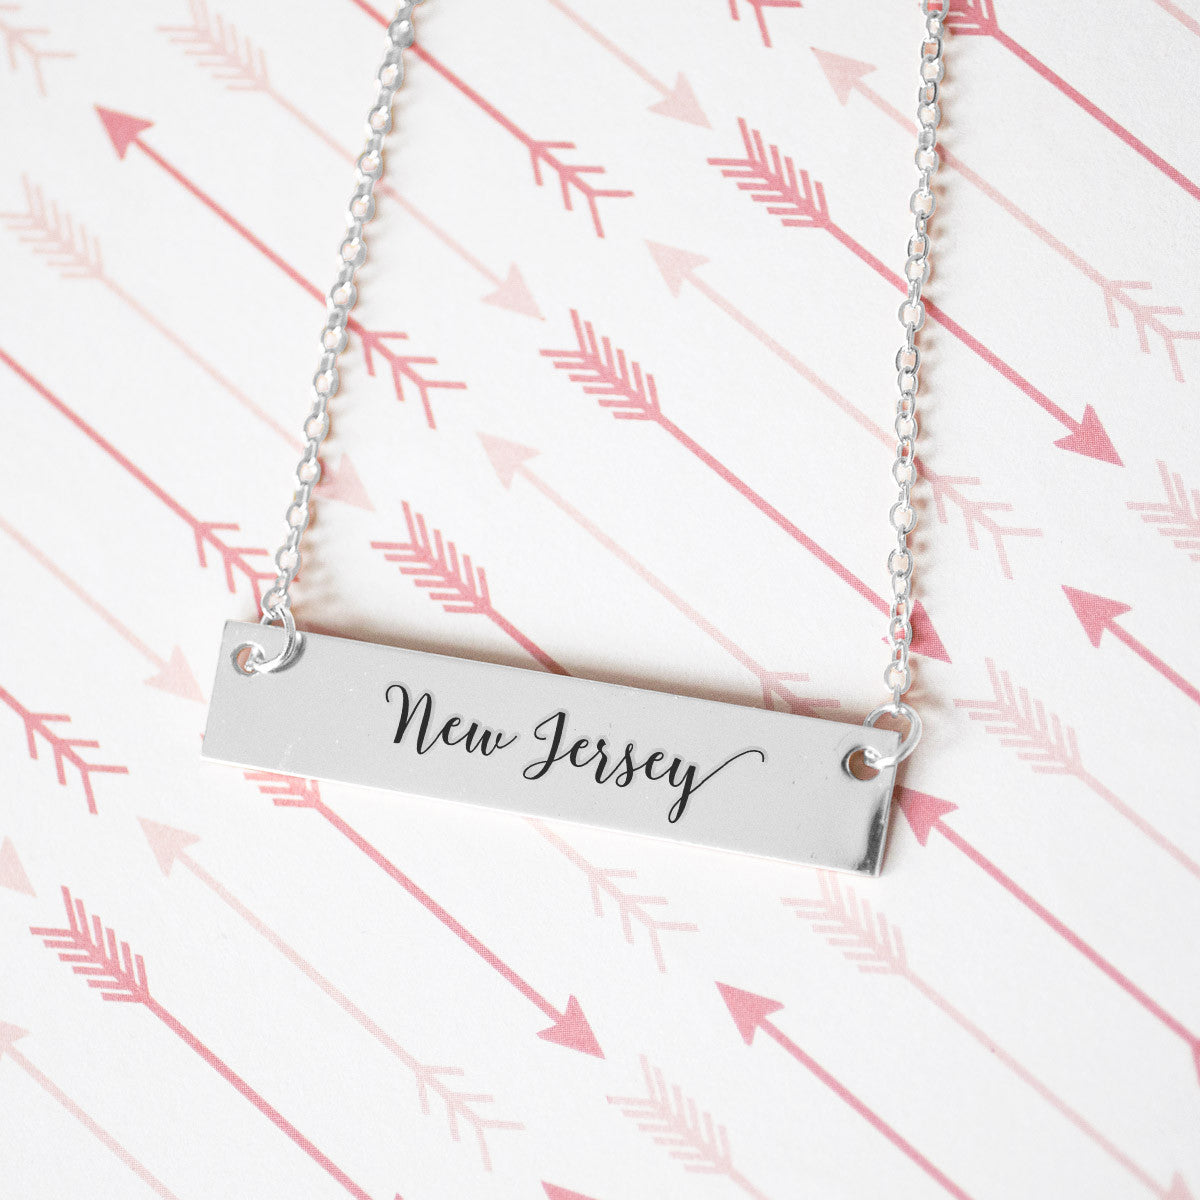 New Jersey Gold / Silver Bar Necklace